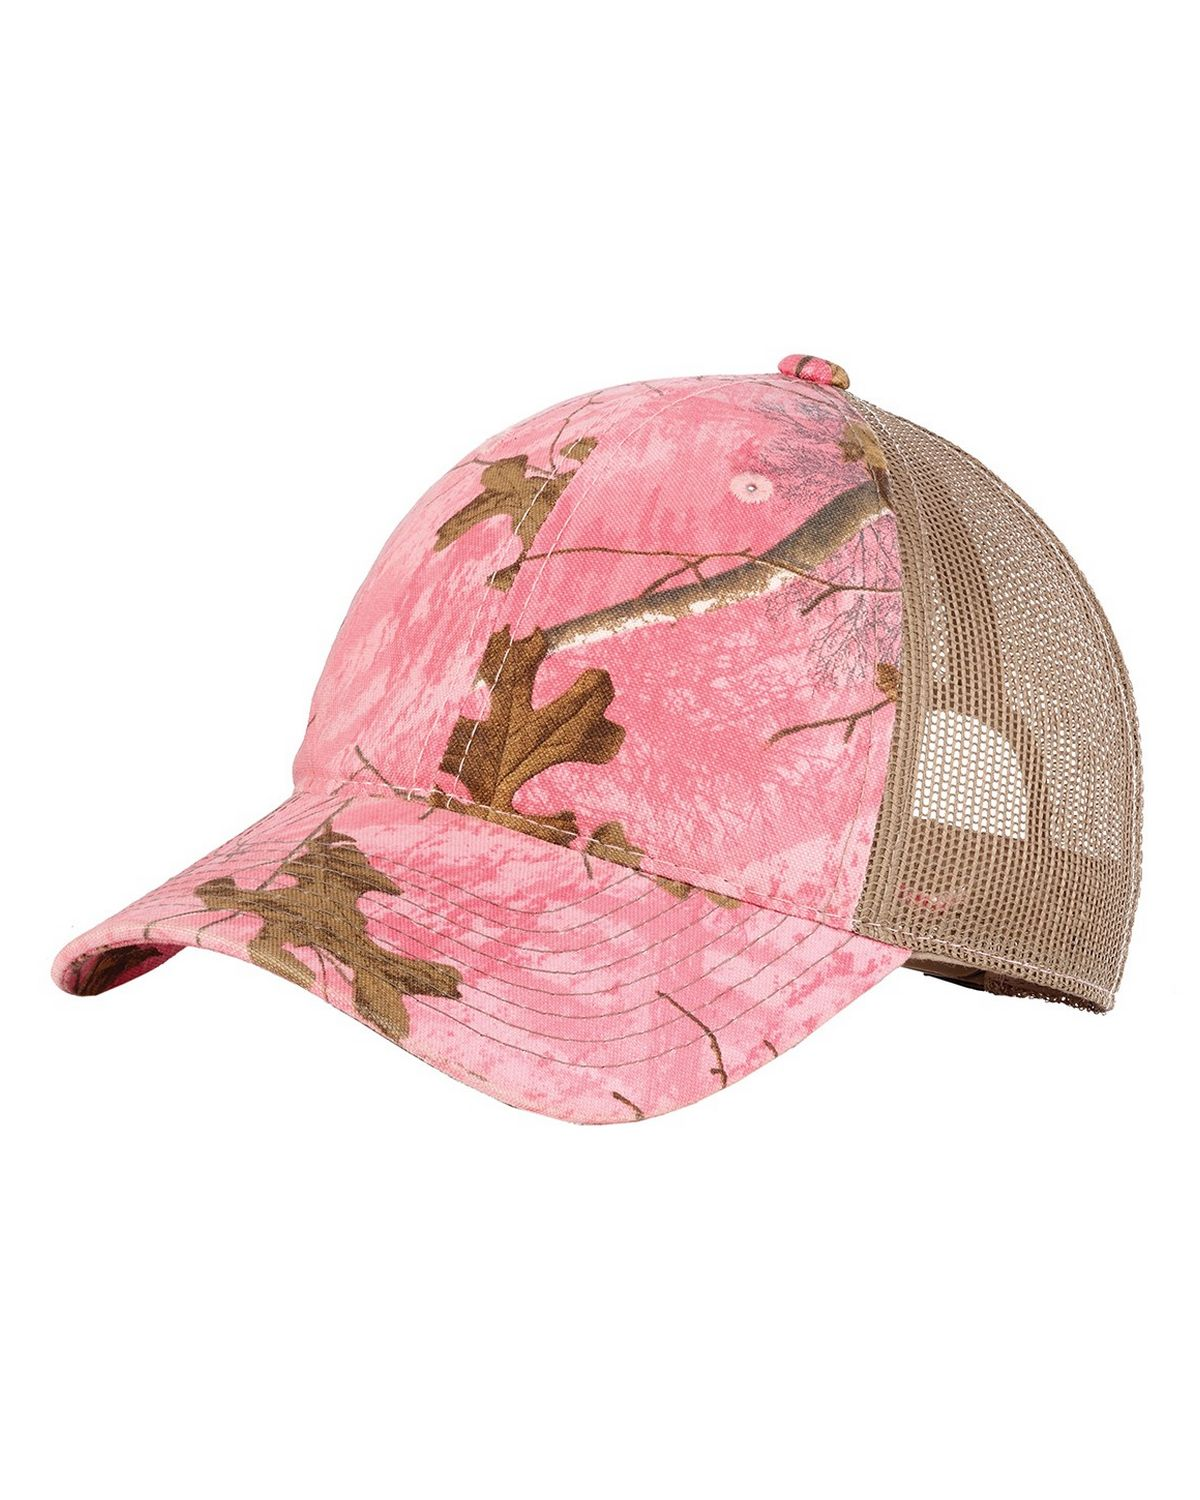 Port Authority C929 Unstructured Camouflage Mesh Back Cap